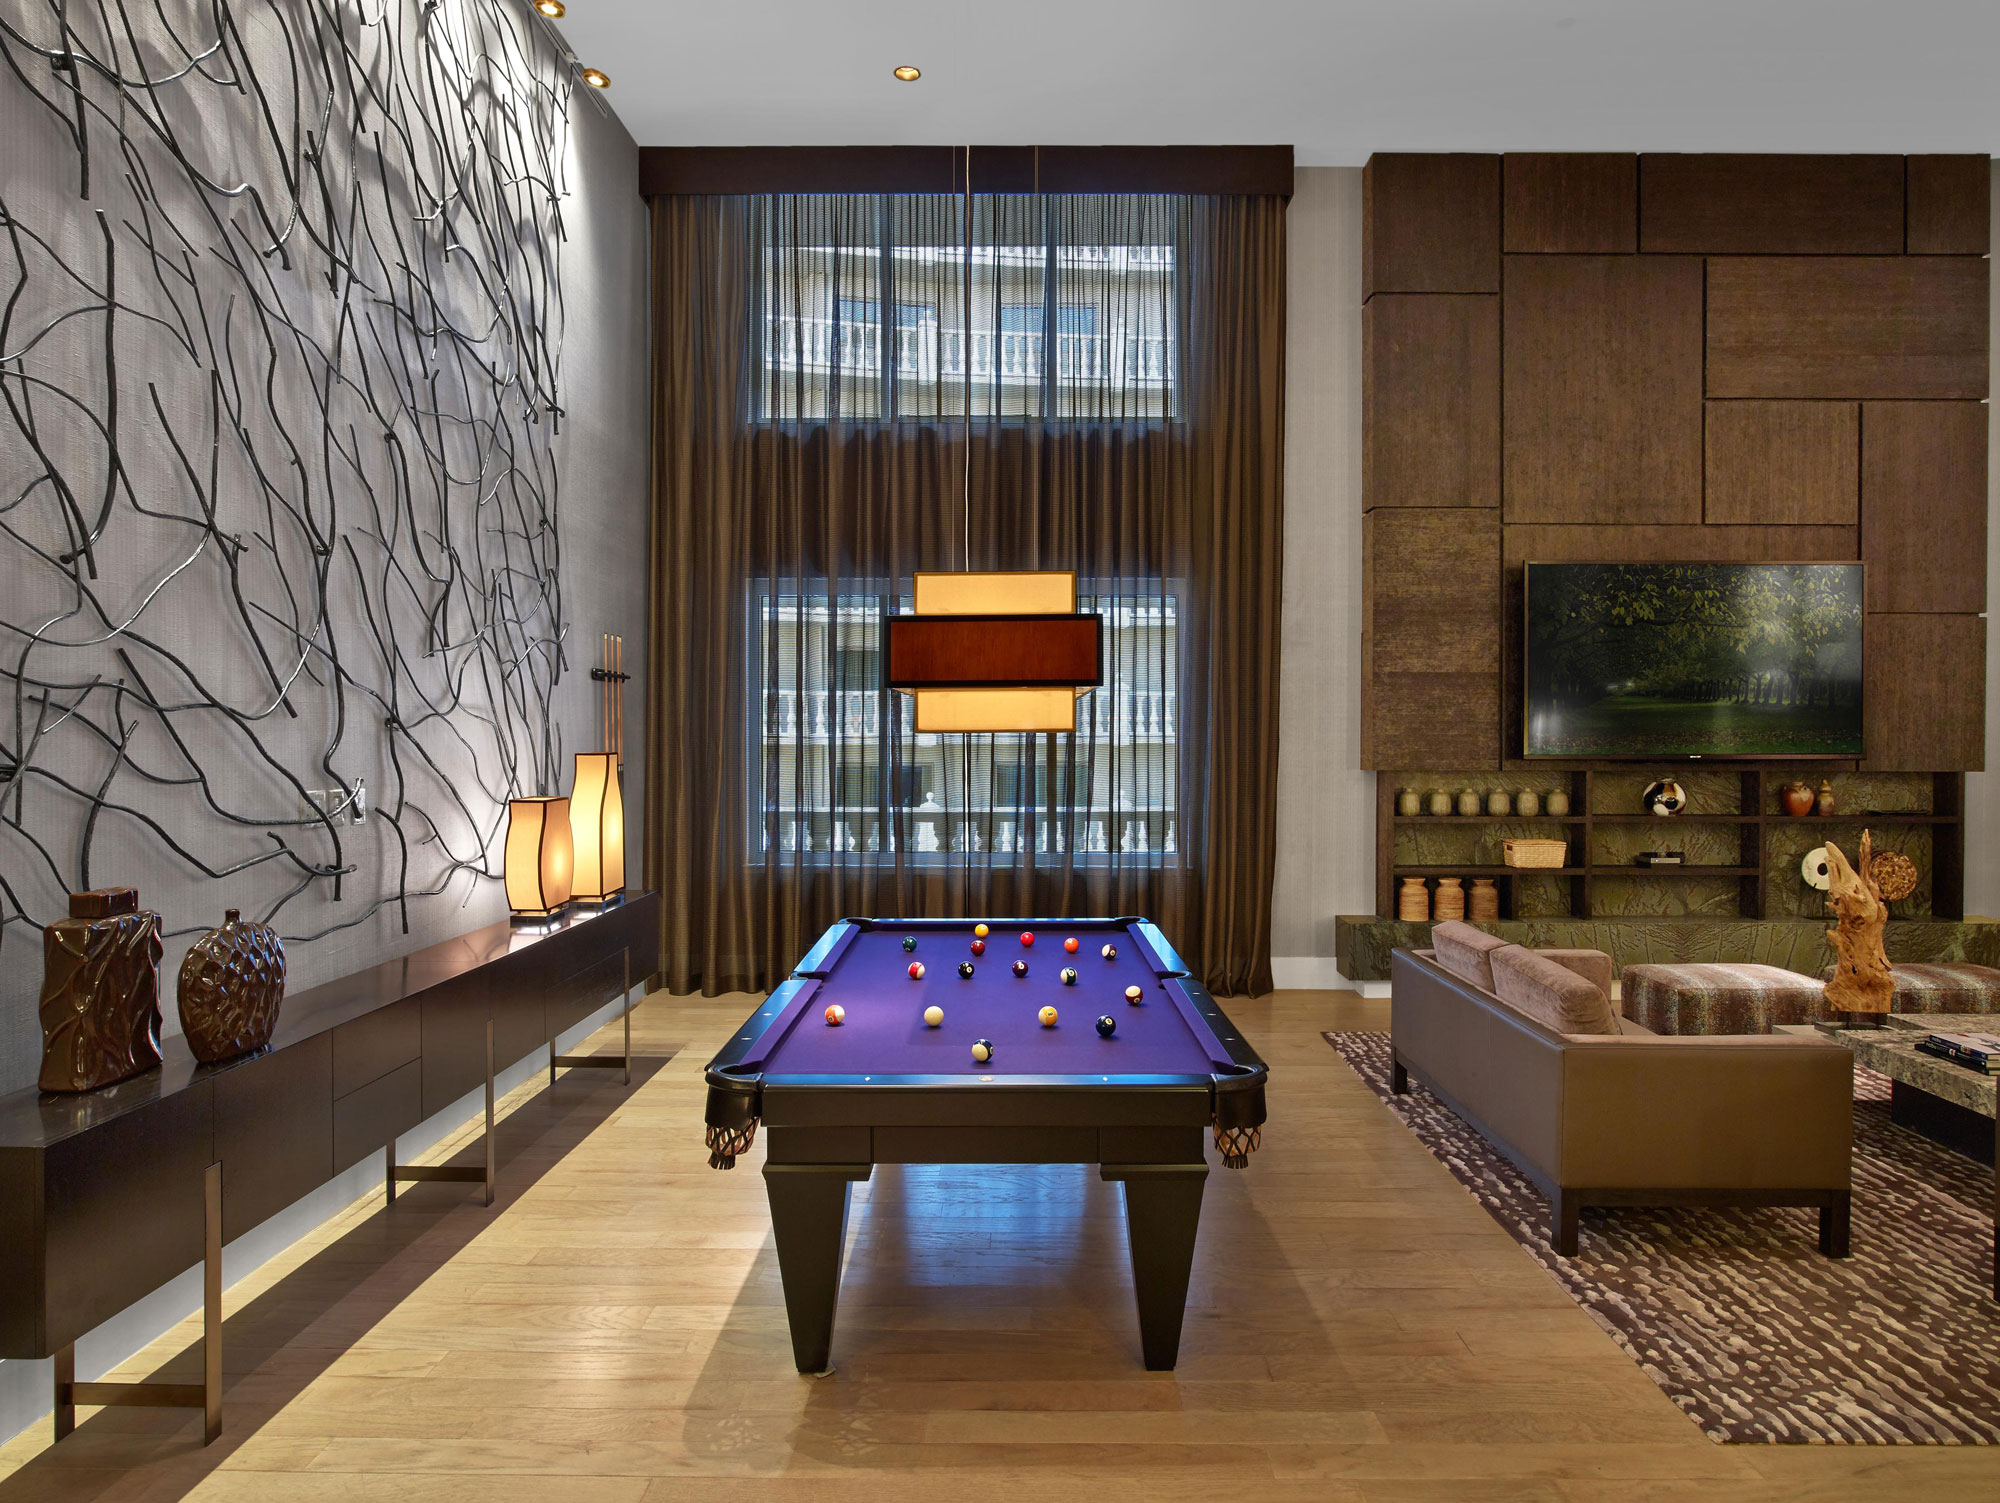 Las Vegas Hotel Rooms With Pool Table